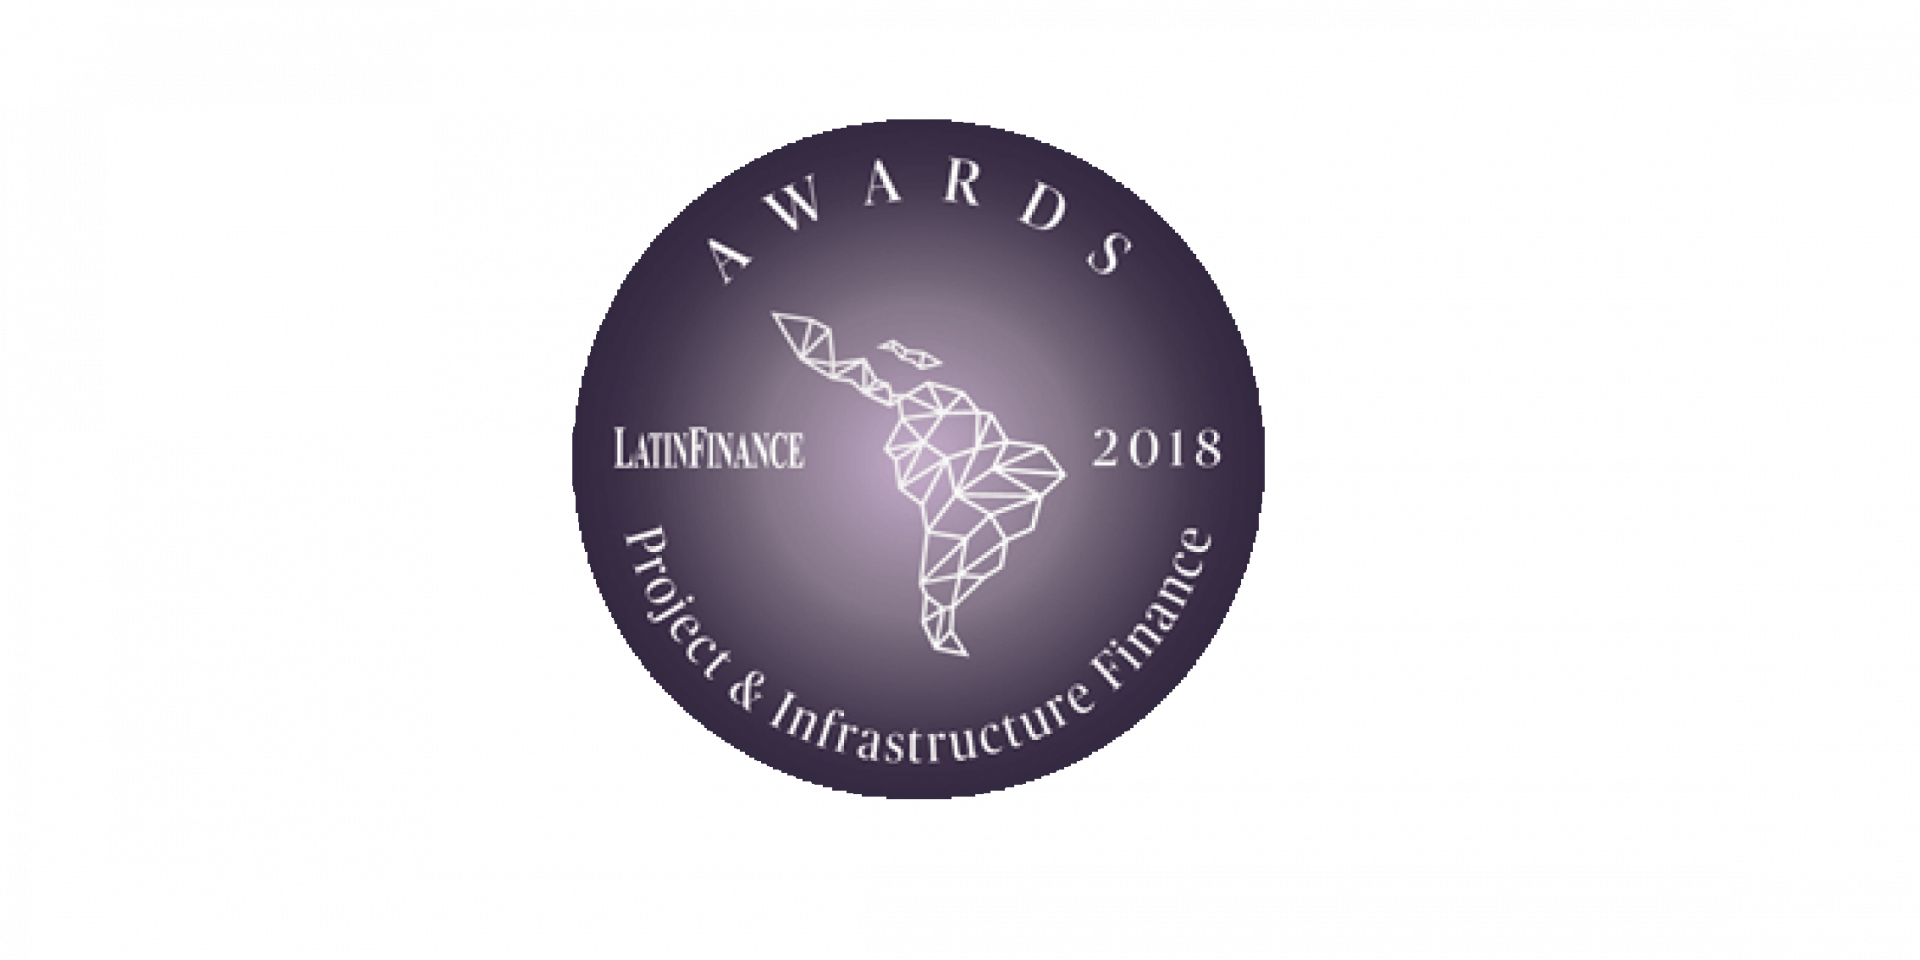 Latin Finance 2018 Project & Infrastructure Finance Awards